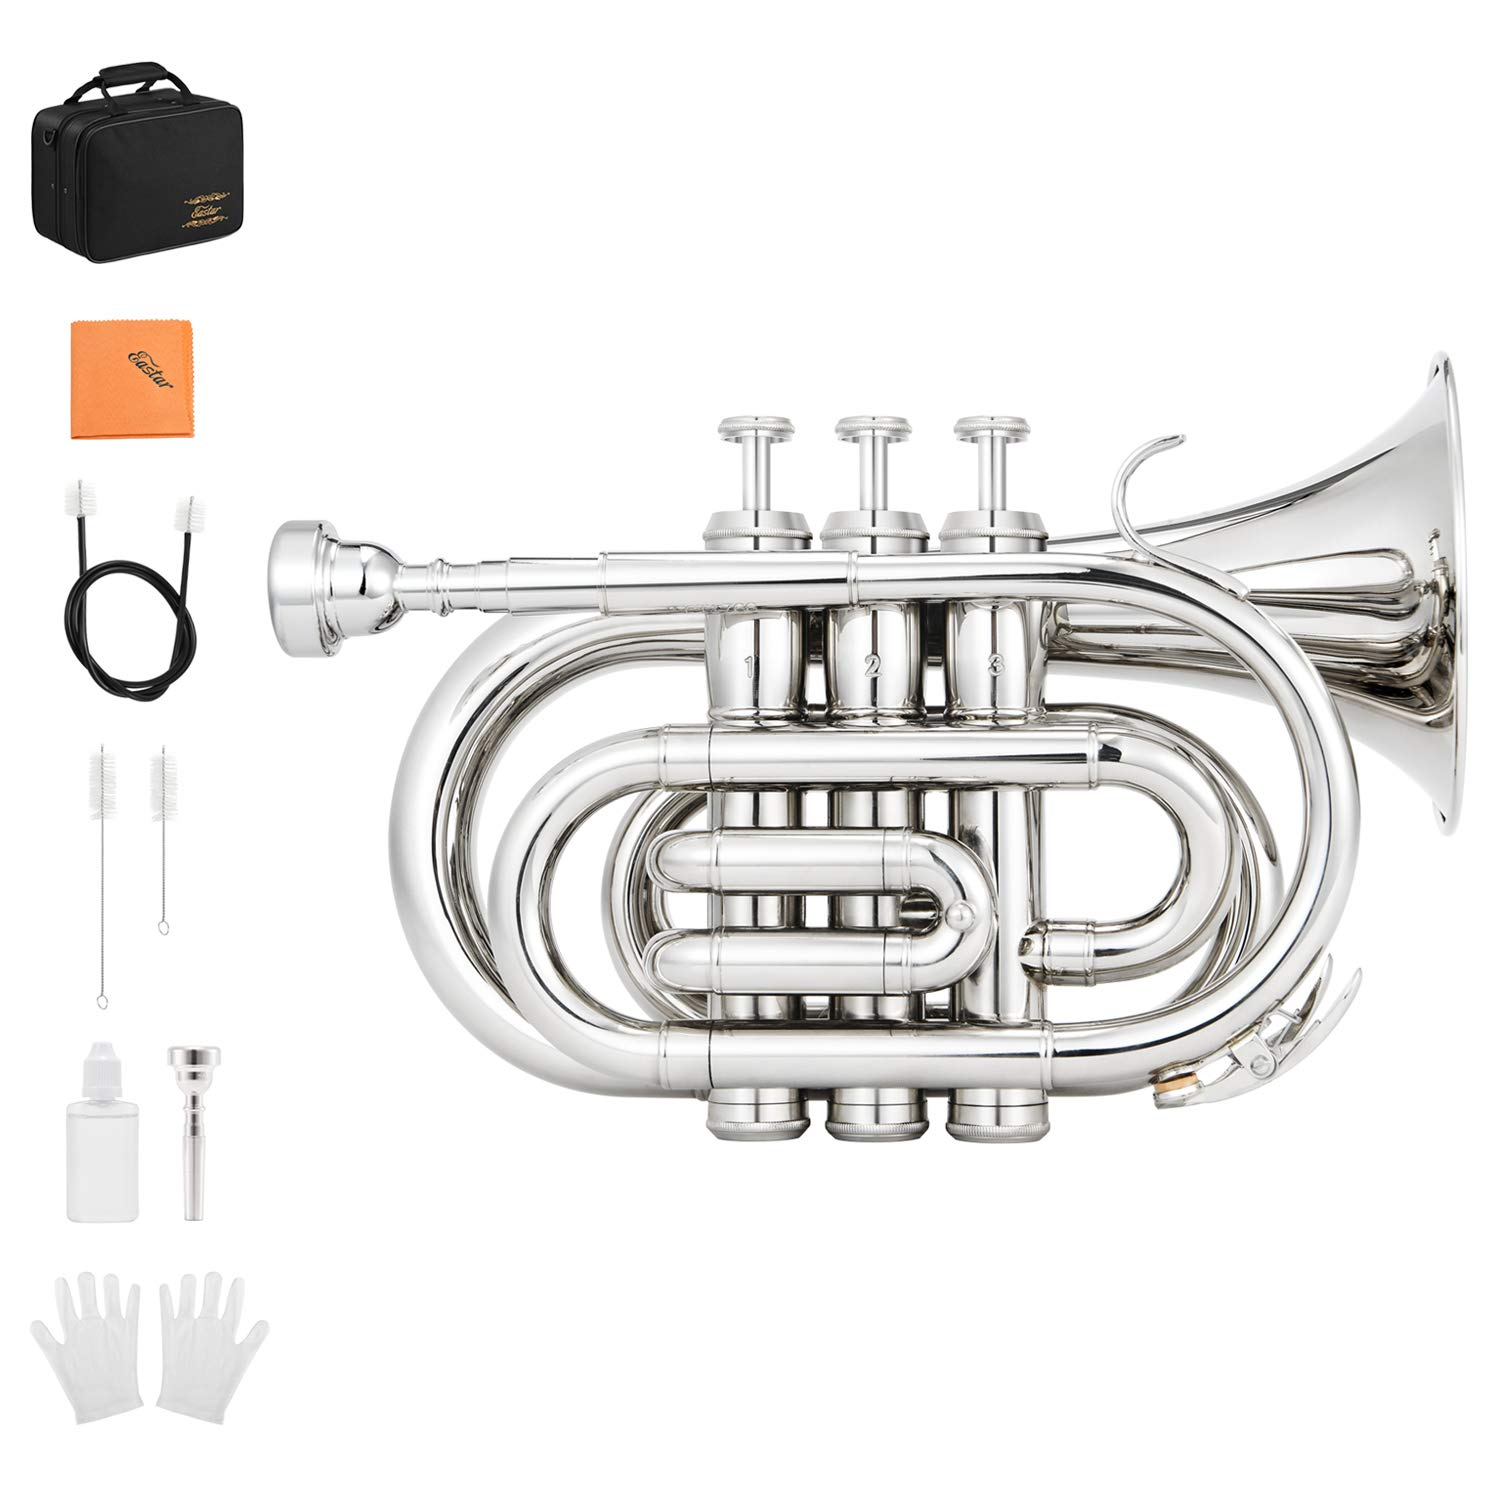 Eastar ETR-330N Pocket Trumpet Bb Nickel Plated with Hard Case, Gloves, 7 C Mouthpiece, Valve Oil, Trumpet Cleaning Kit by Eastar (Image #1)